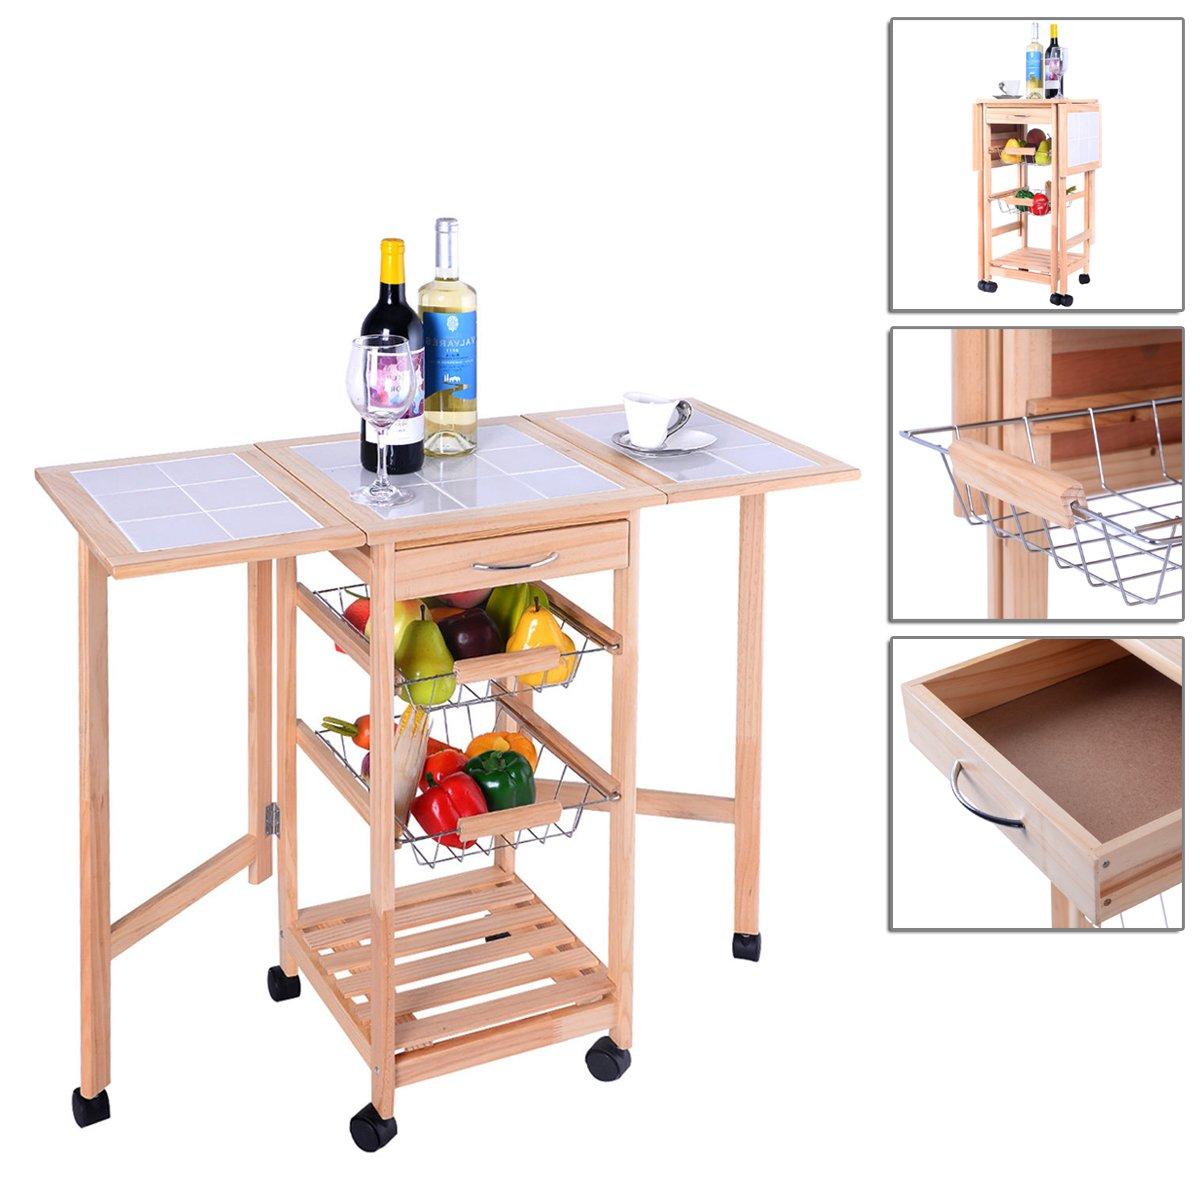 Portable Rolling Kitchen Trolley Cart Drop Leaf Storage With 2 Smooth Chrome Plated Pull-out Baskets TSE176A